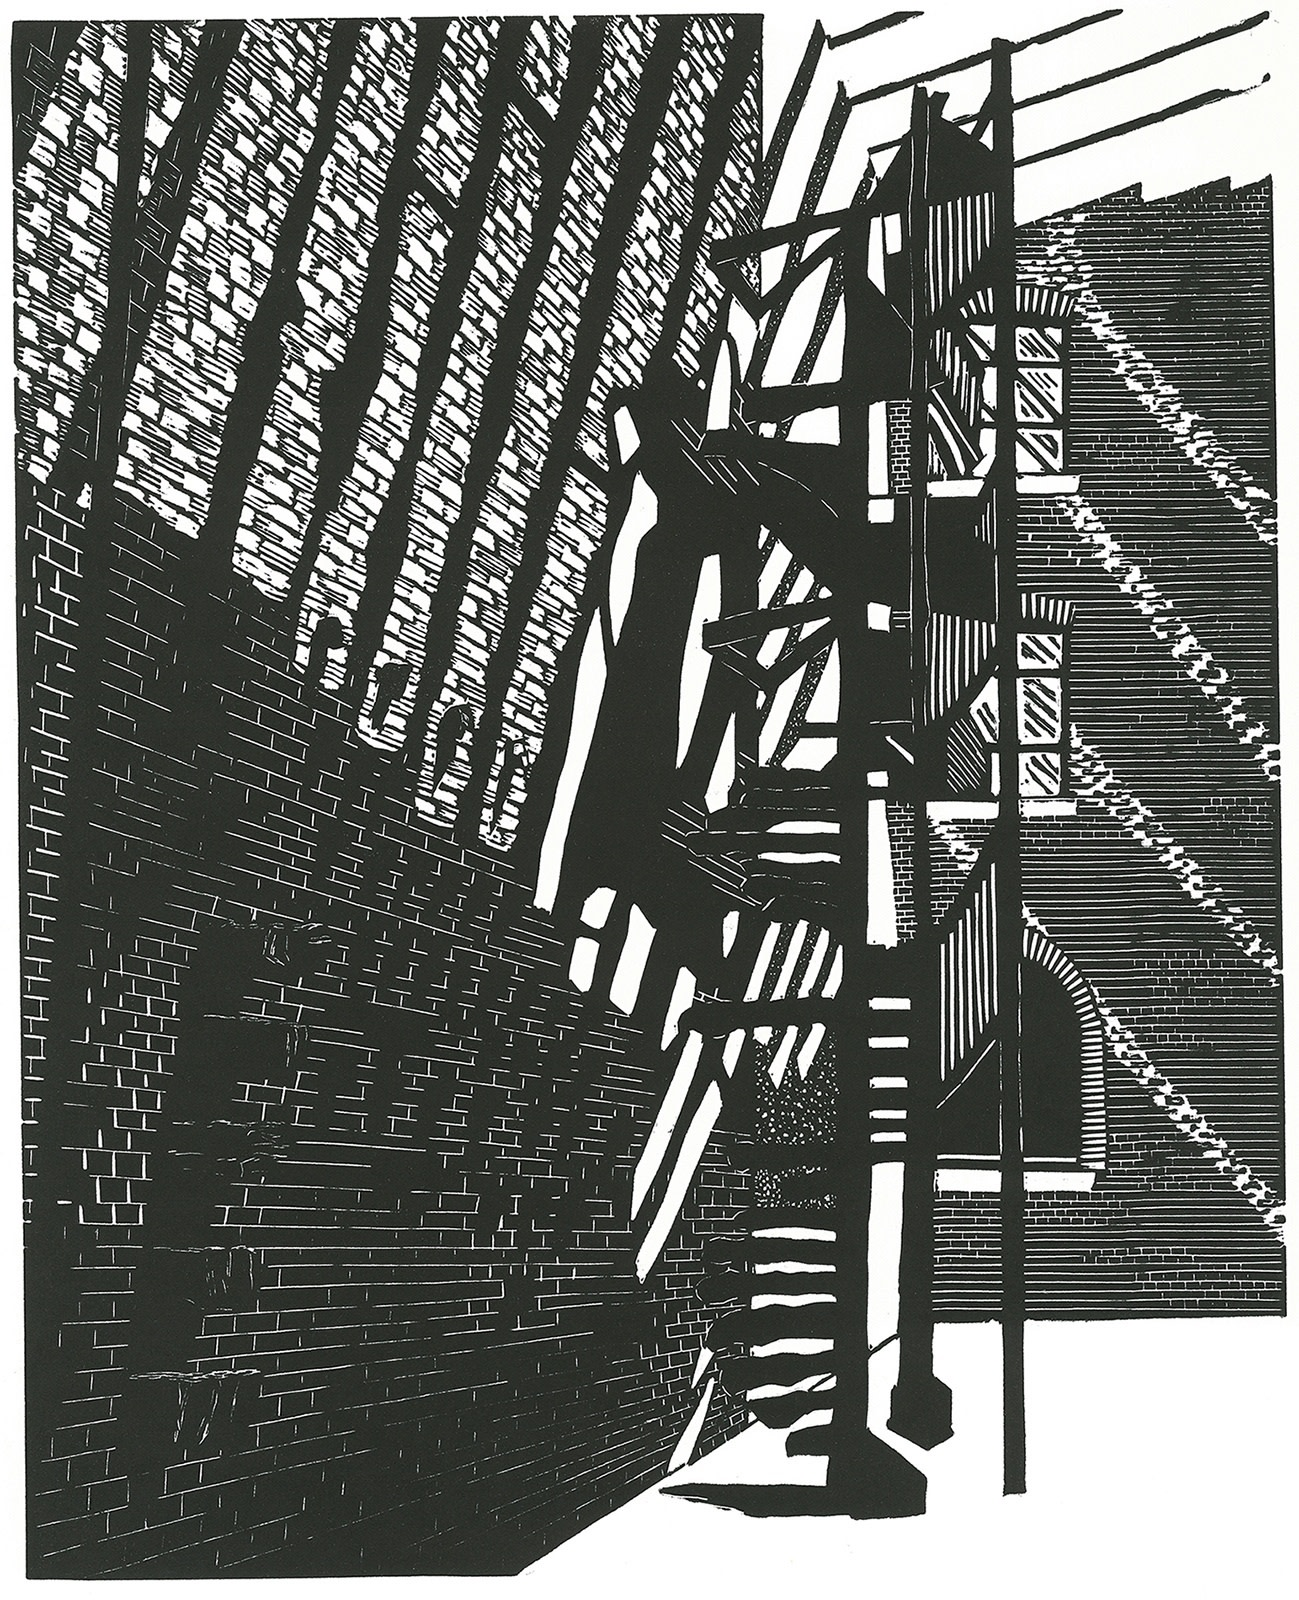 "<span class=""link fancybox-details-link""><a href=""/exhibitions/18/works/image_standalone962/"">View Detail Page</a></span><p>Elizabeth Bennett</p><p>Staircase, Victoria & Albert Museum II</p><p>linocut</p><p>50 x 40cm</p><p>£275 framed</p><p>£195 unframed</p>"